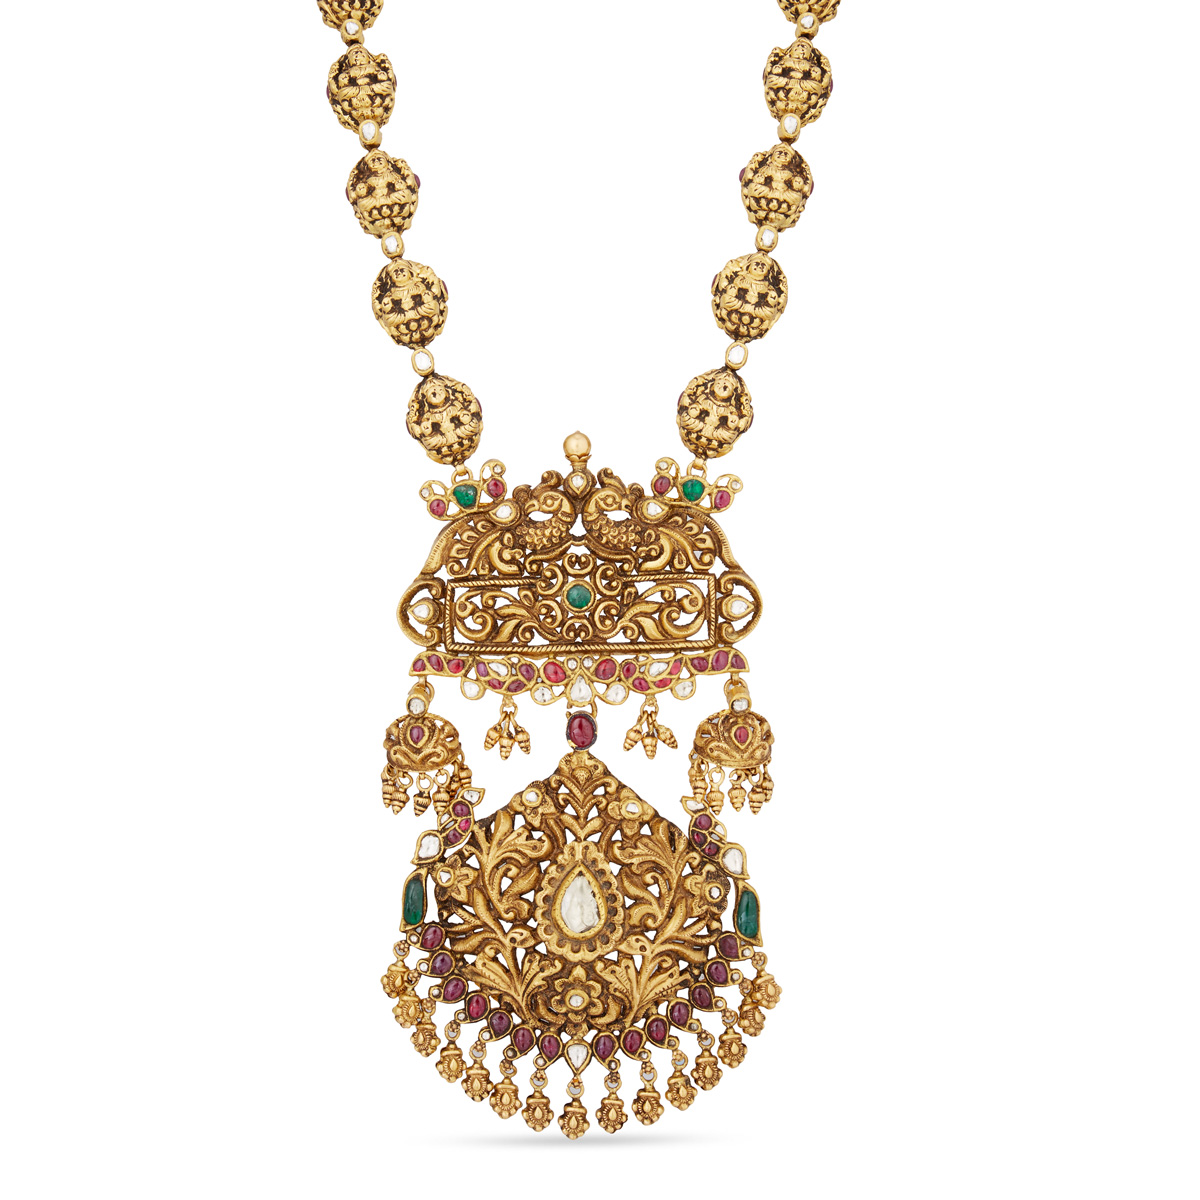 Sumangalaa Long Necklace